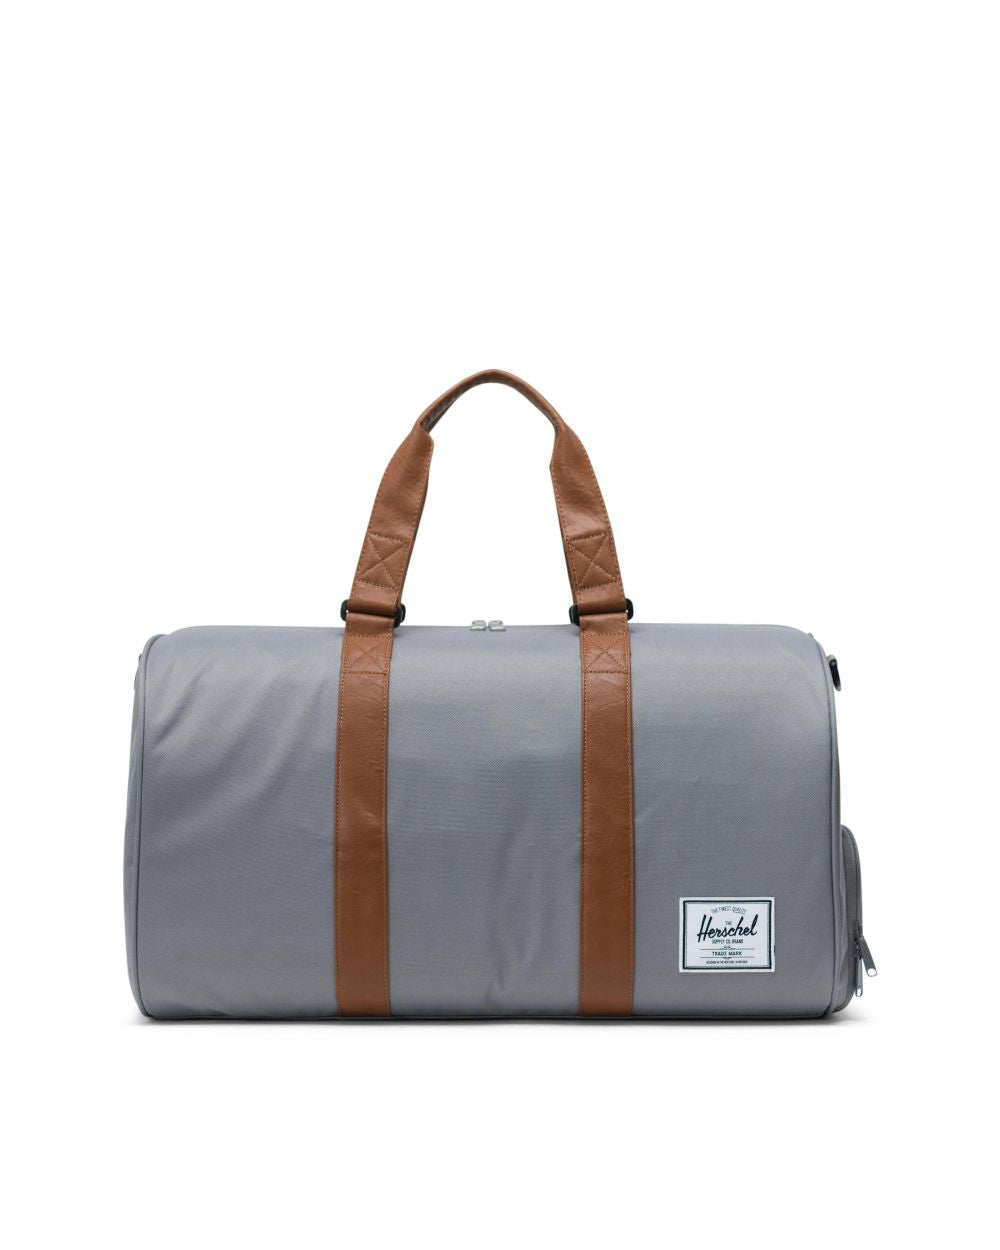 NOVEL DUFFLE - GREY/TAN SYNTHETIC LEATHER